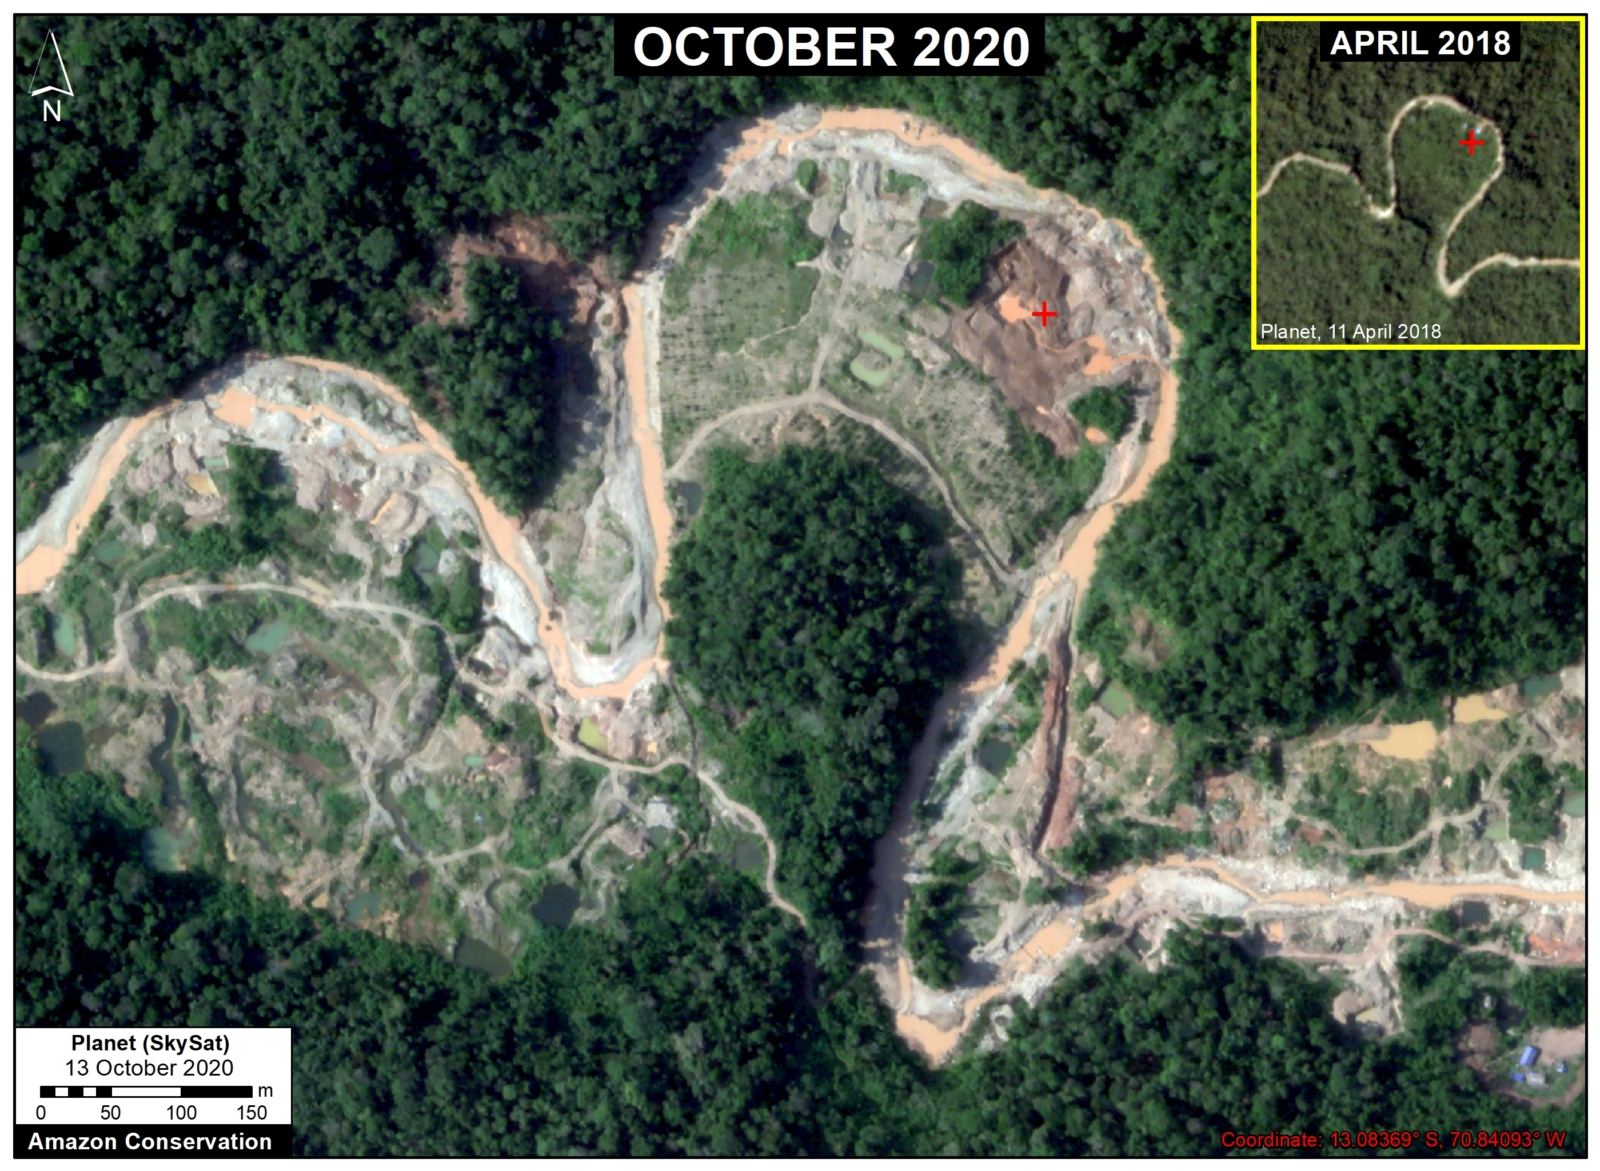 Recent expansion of gold mining deforestation in the buffer zone of Amarakaeri Communal Reserve (Cusco region). © 2020, Planet Labs Inc. All Rights Reserved.